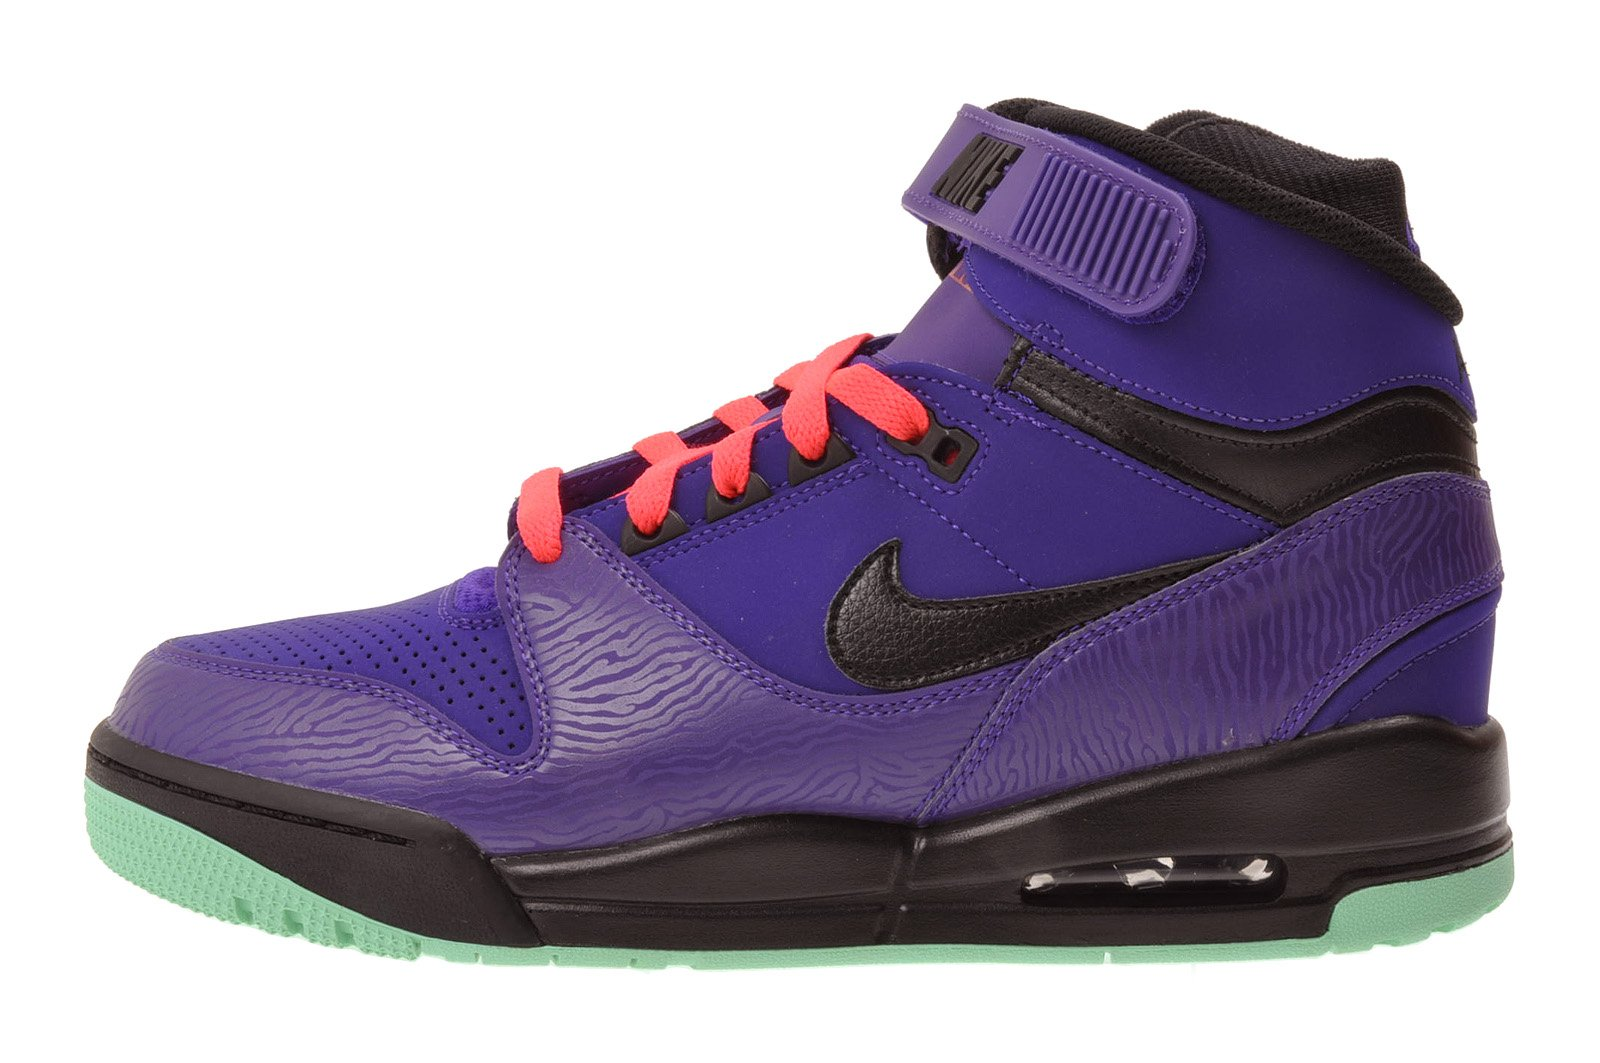 Nike Air Revolution Mens Basketball Shoes - Electric Purple